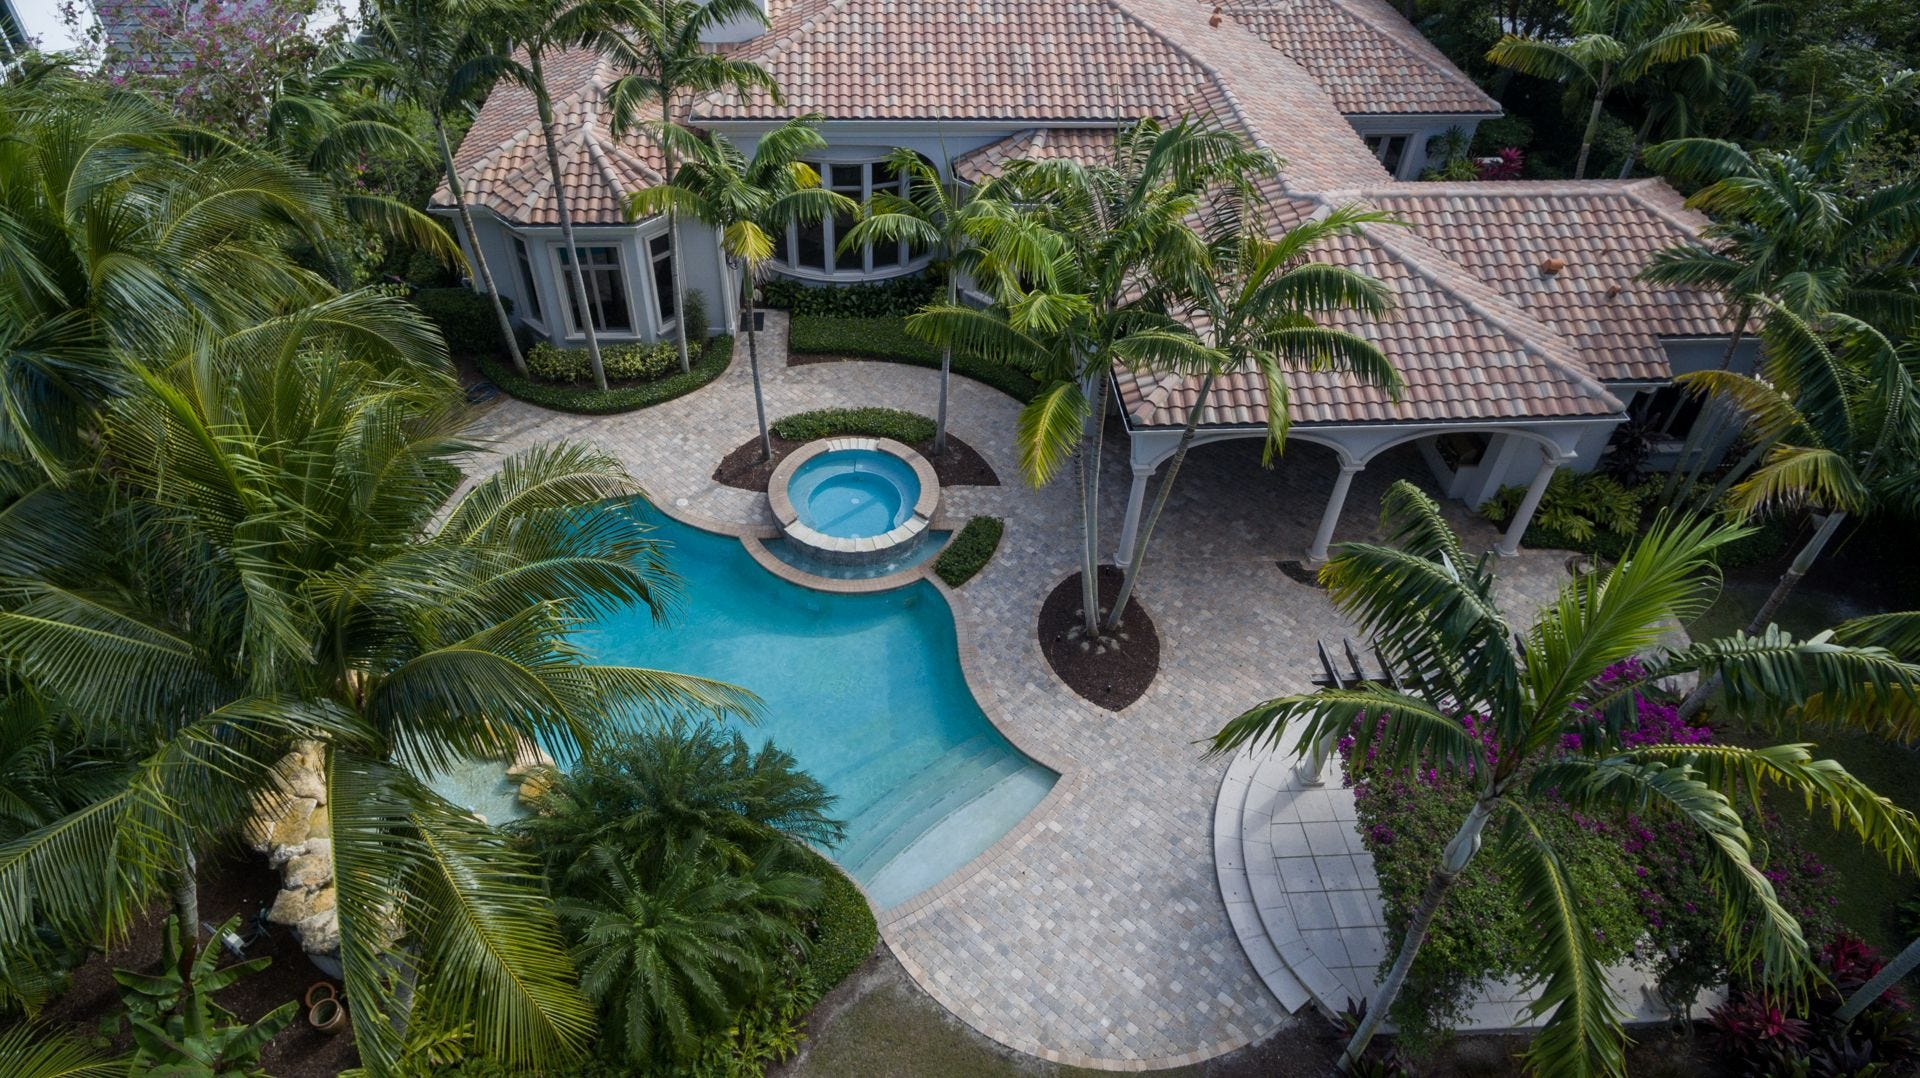 An Aerial View Shows The Lushly Landscaped Pool And